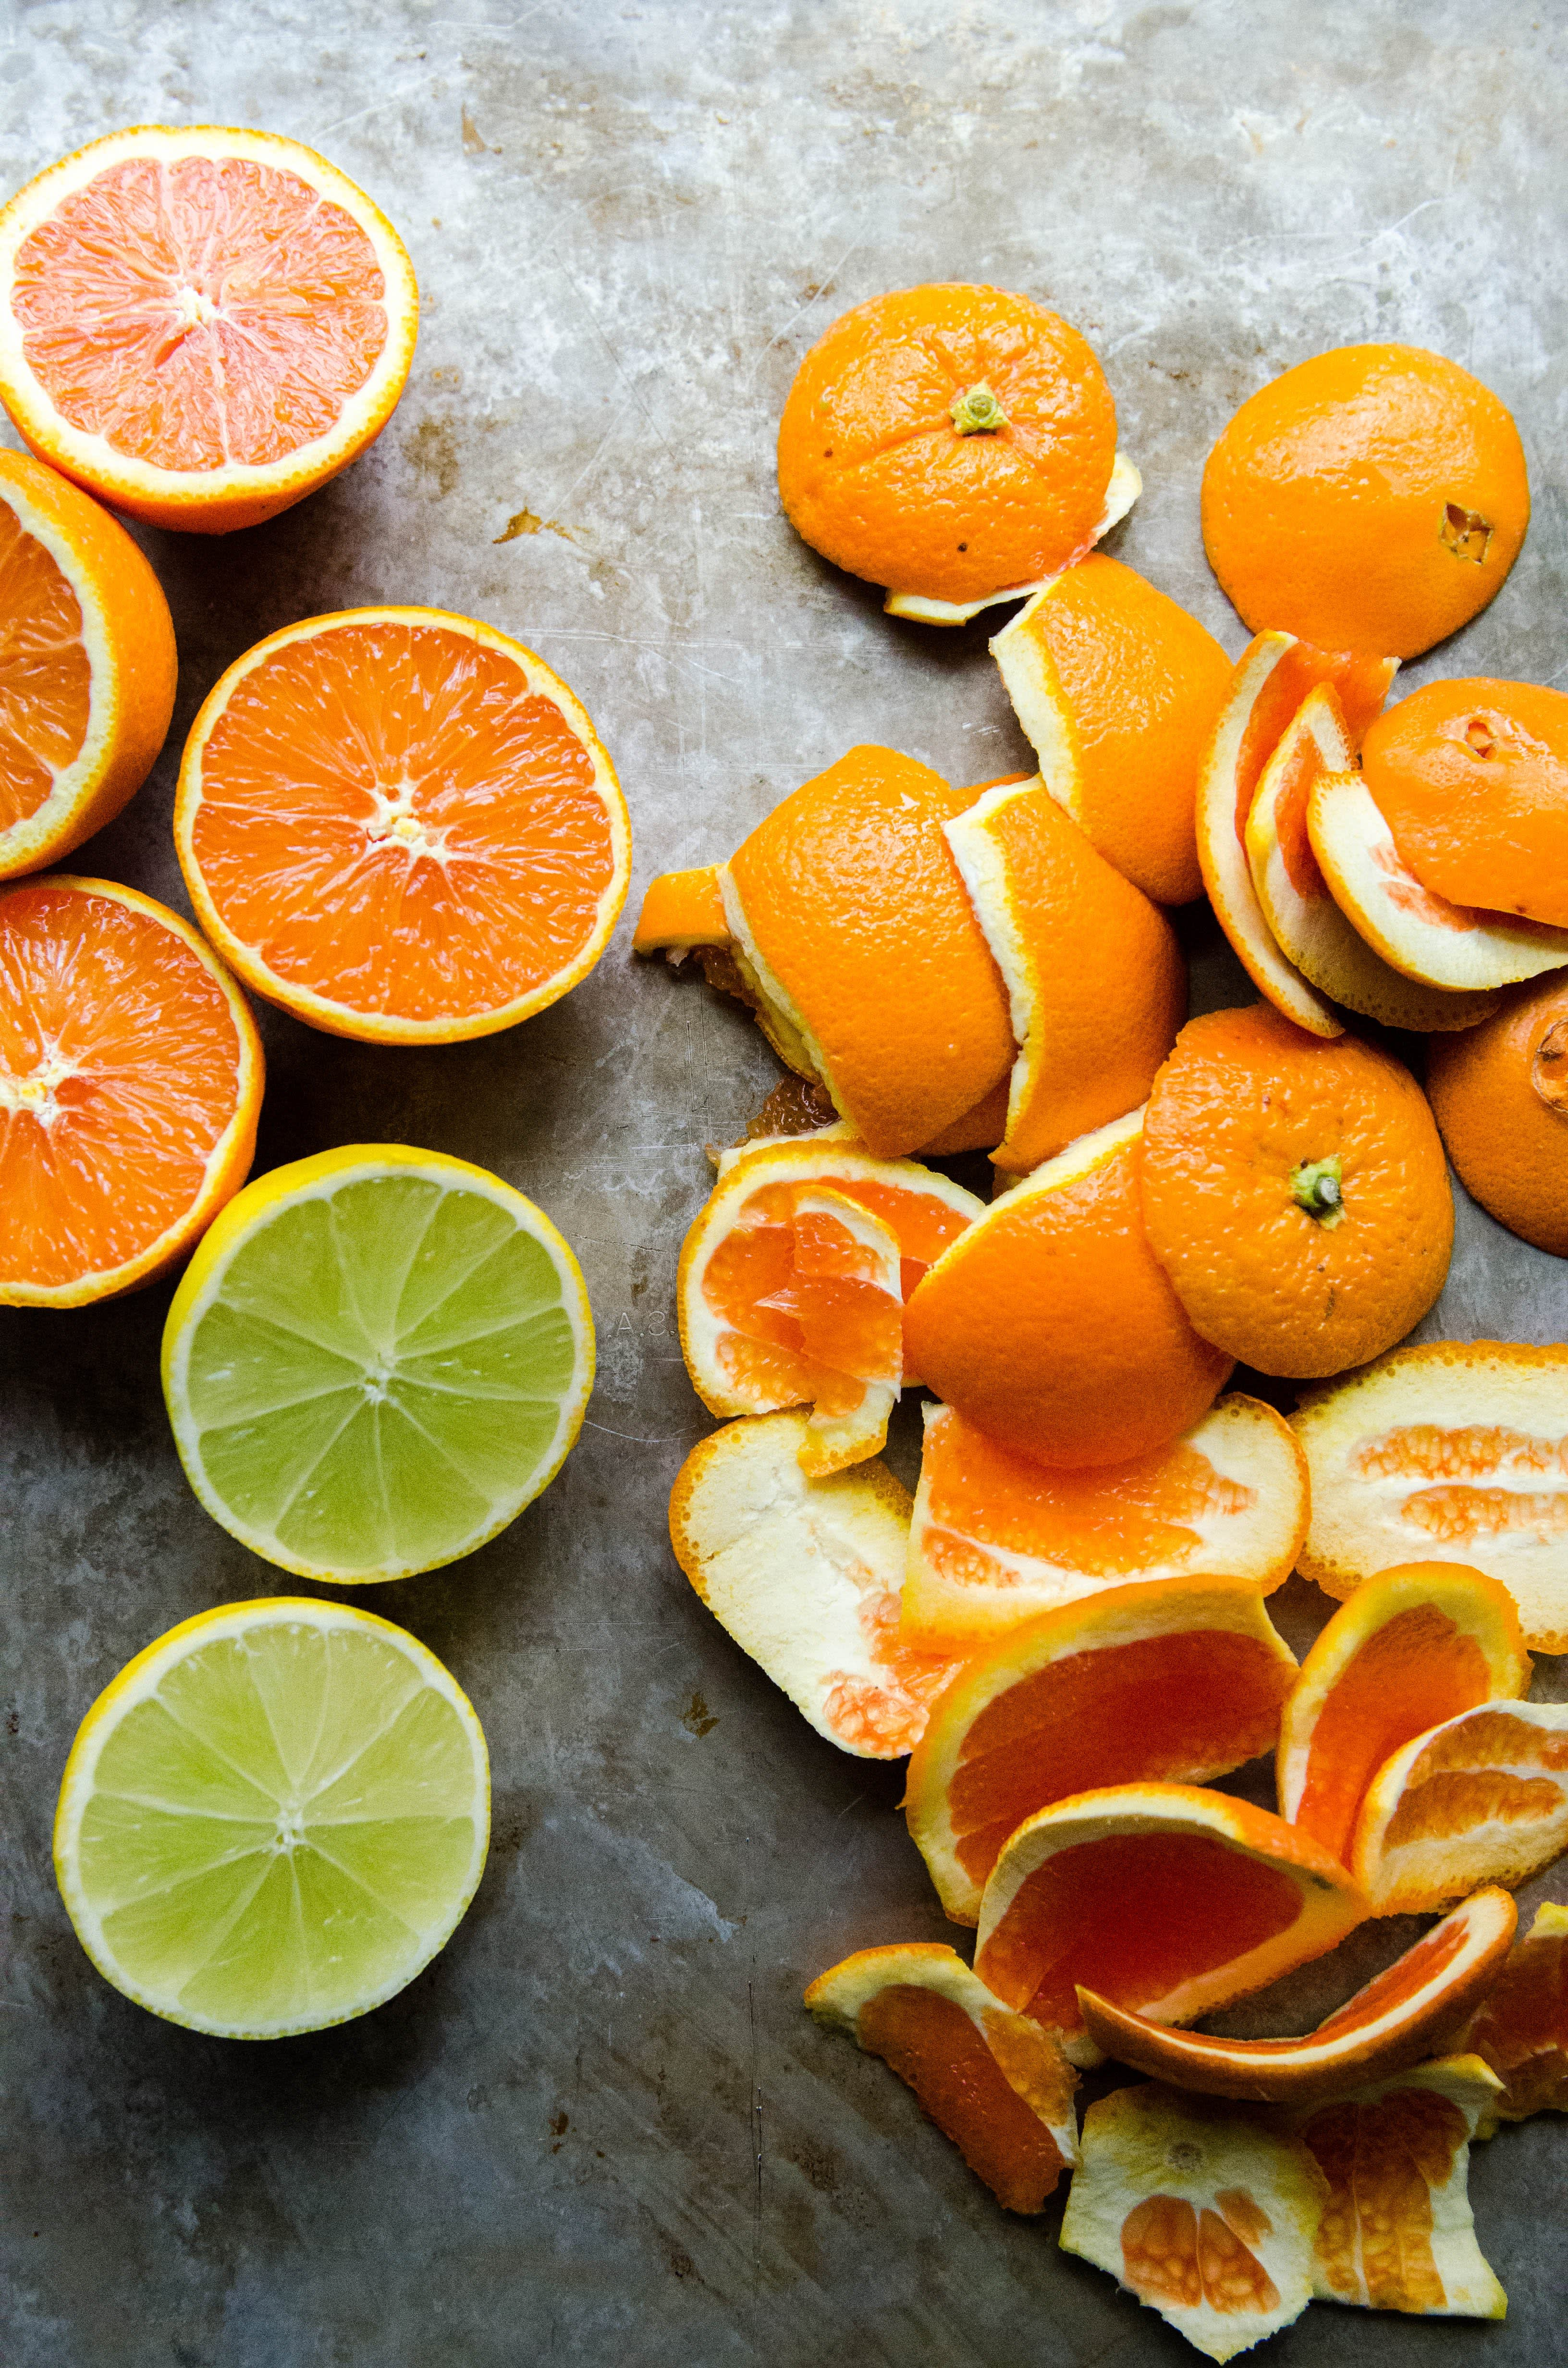 How To Make an All-Purpose Kitchen Cleaner Using Citrus Peels: gallery image 1